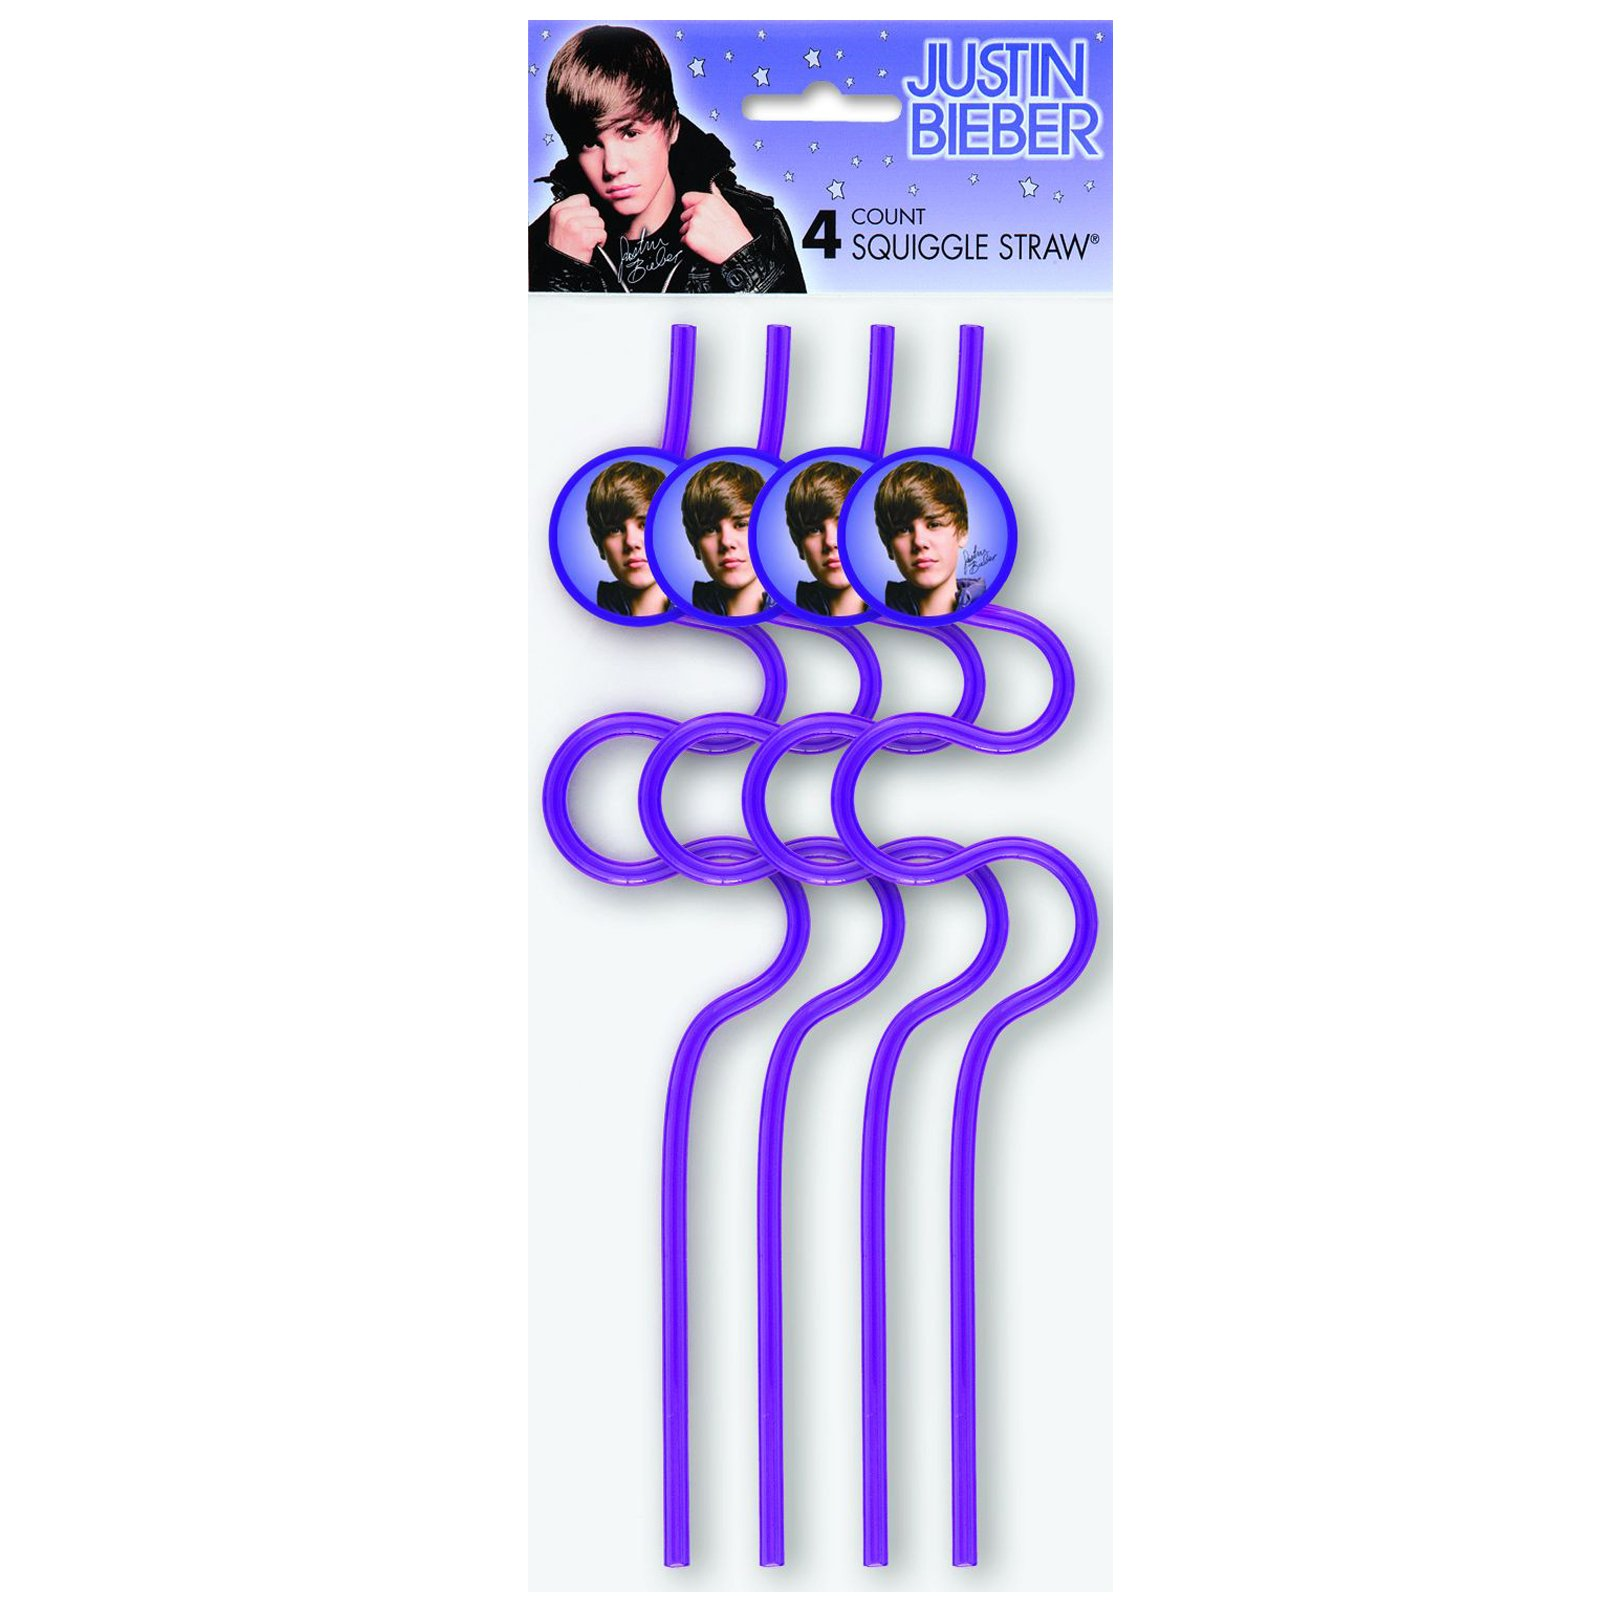 Justin Bieber Squiggle Straws (4 count)